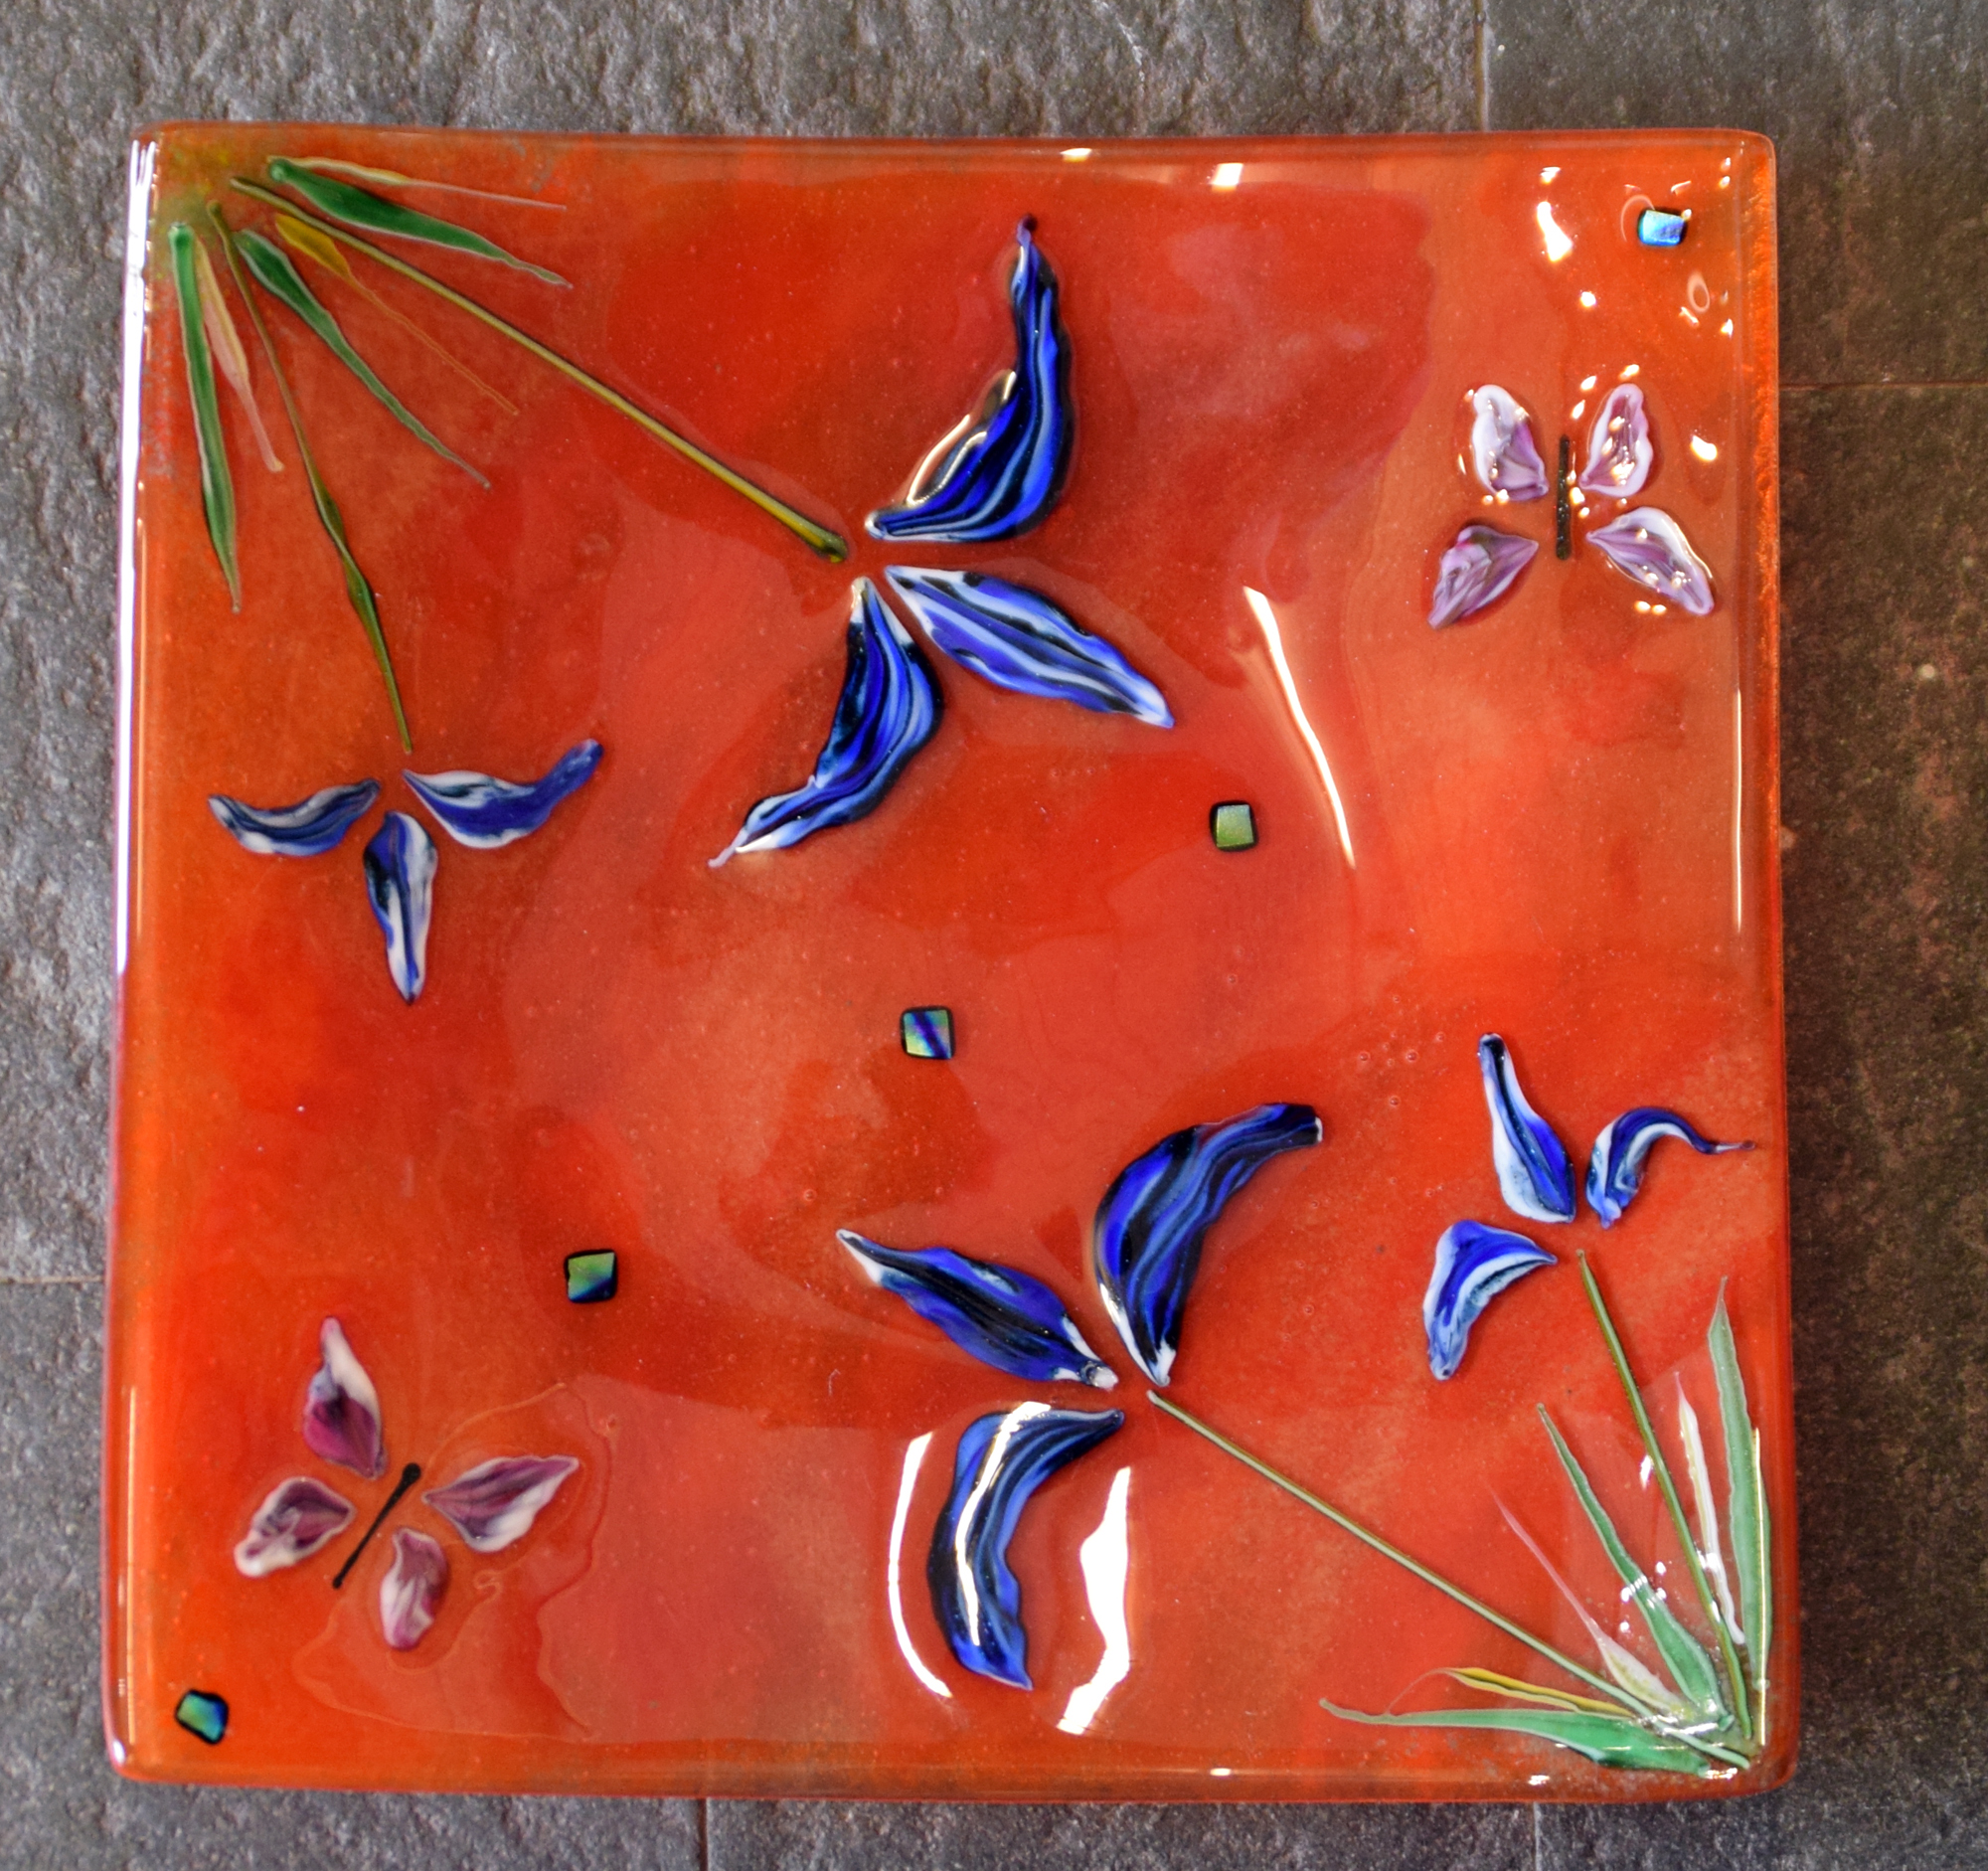 Fused glass plate in orange